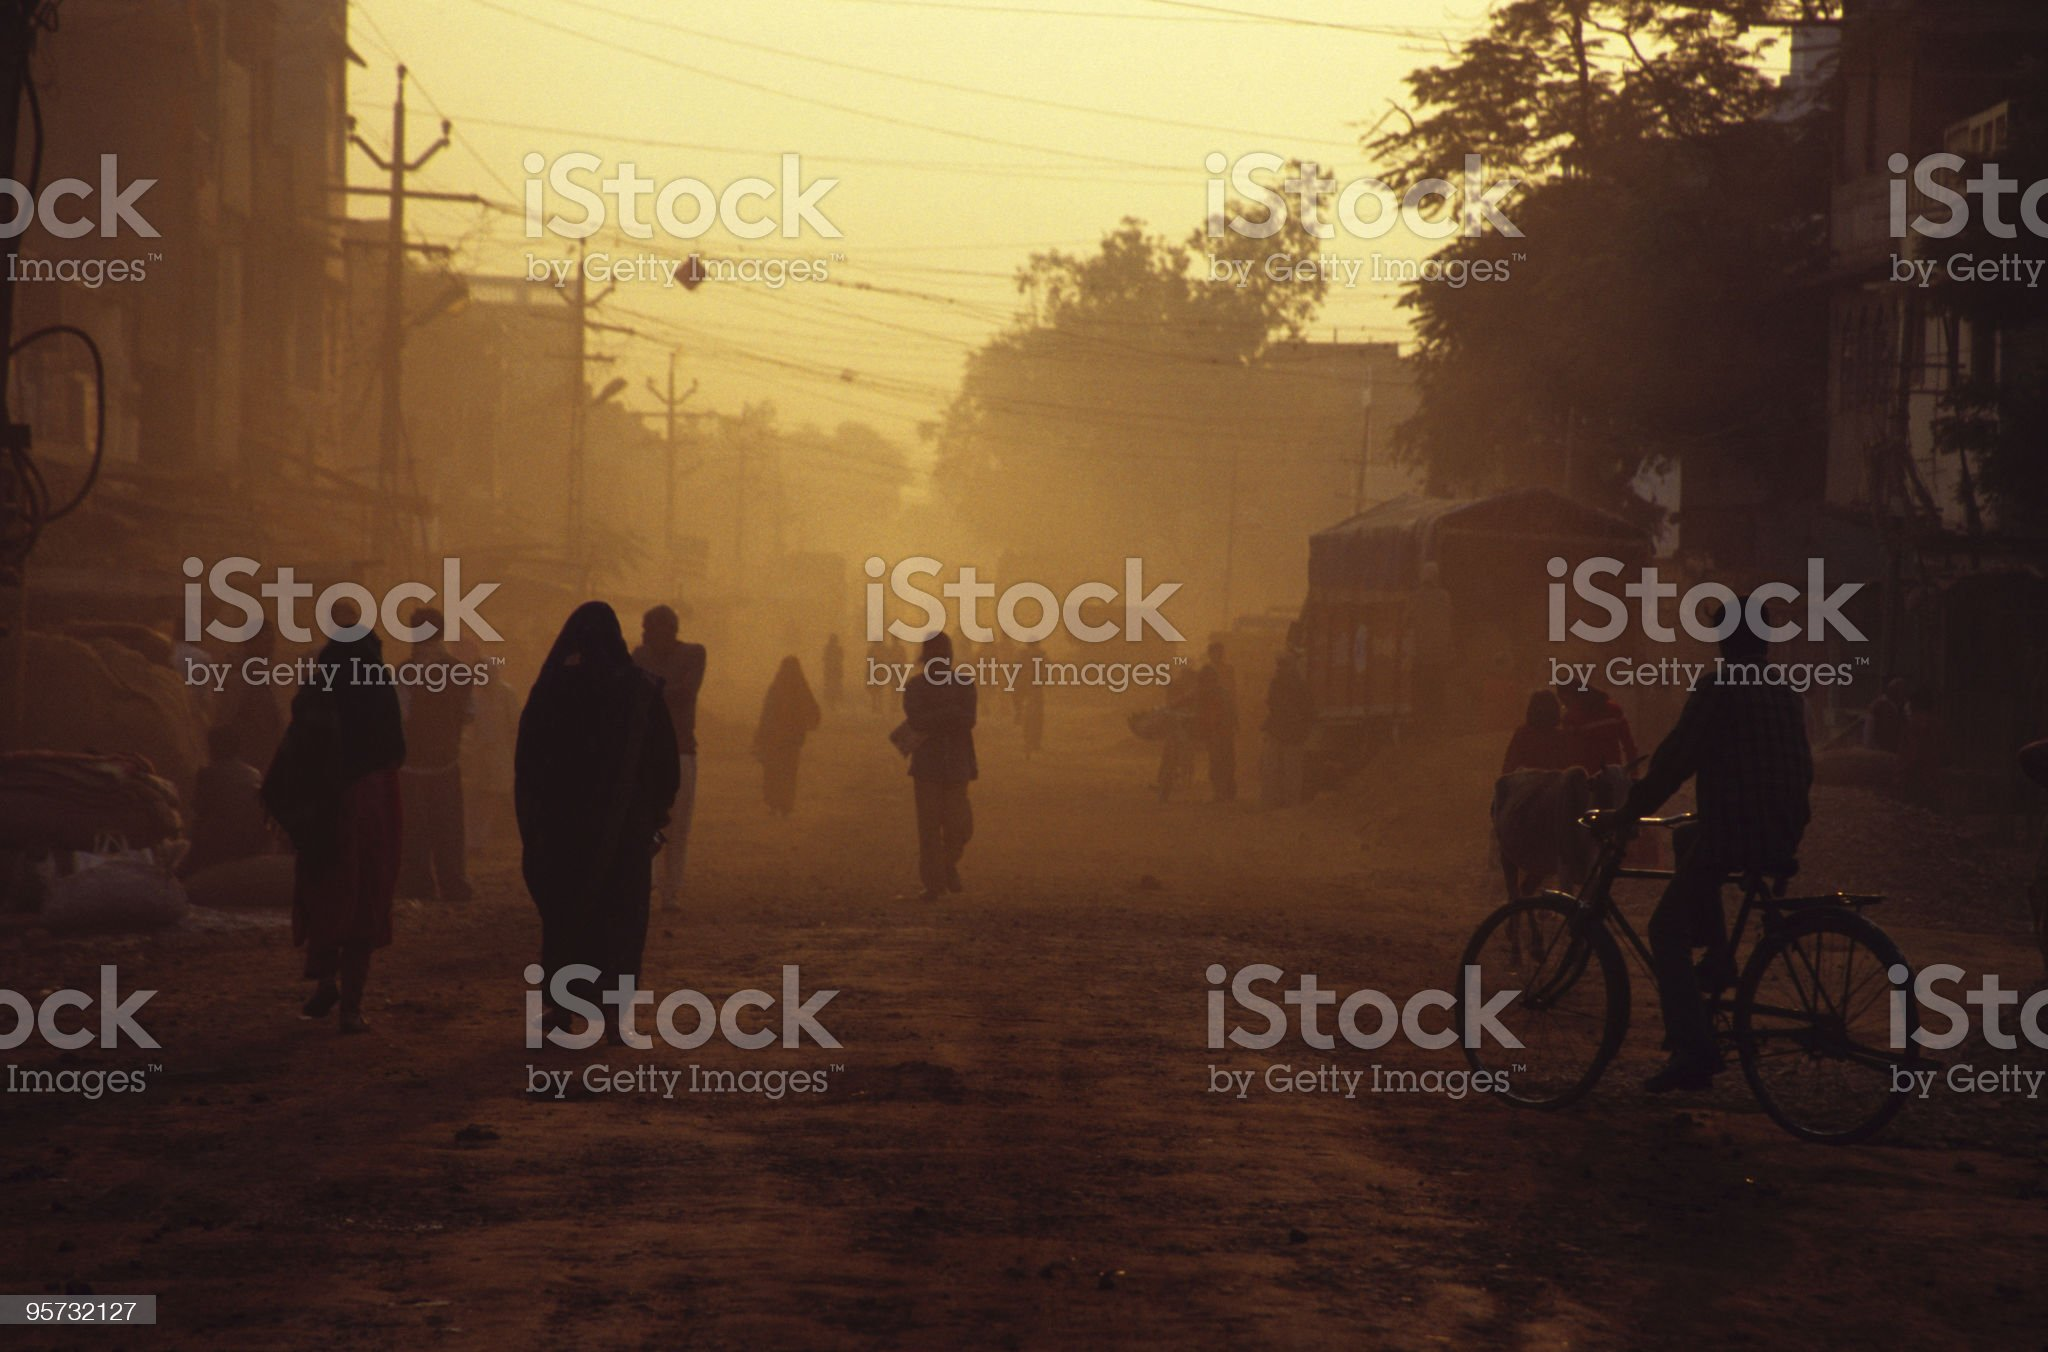 Dusty Street Scene royalty-free stock photo